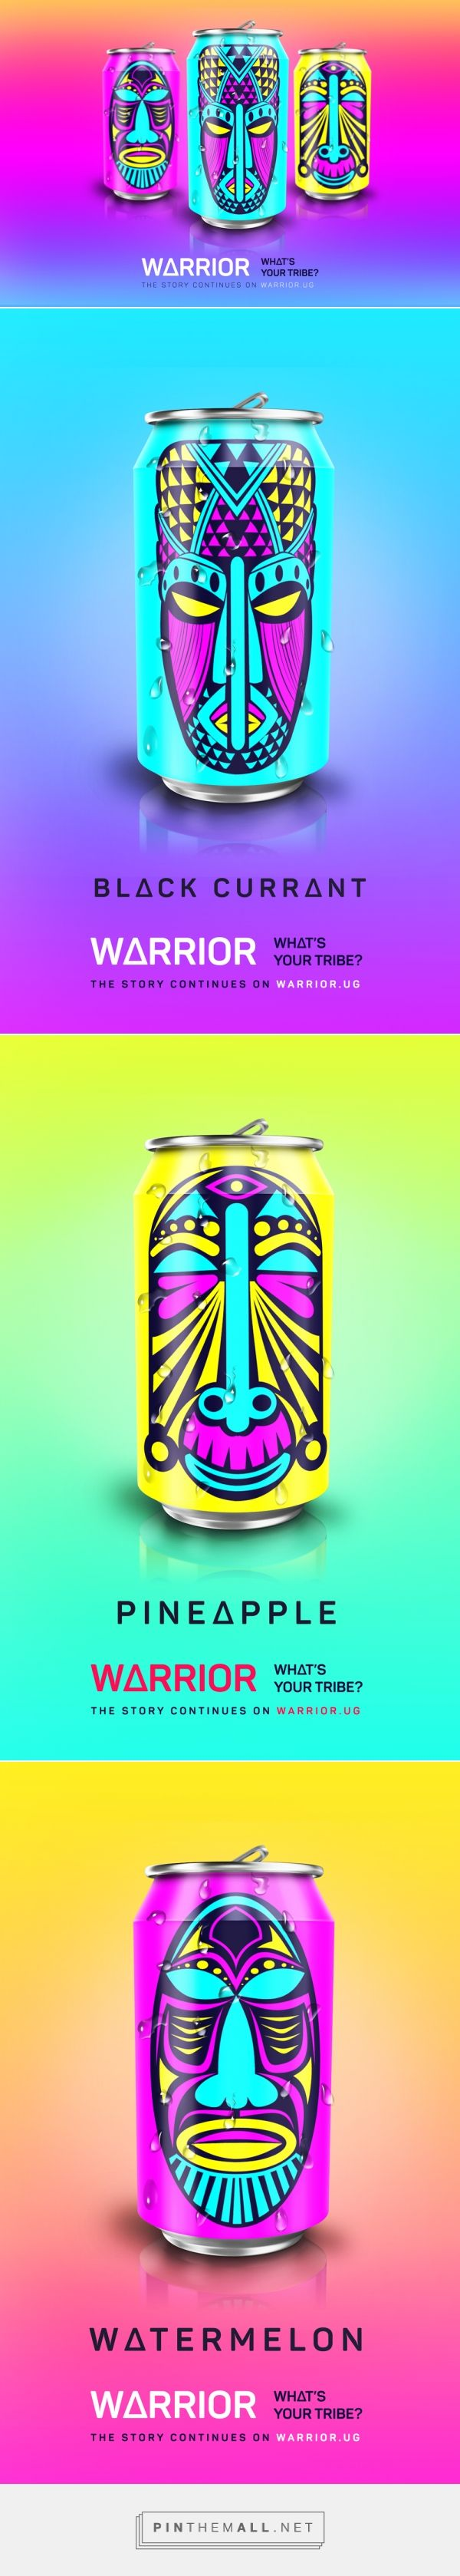 Warrior Energy Drink (Concept) - Packaging of the World - Creative Package Design Gallery - http://www.packagingoftheworld.com/2016/08/warrior-energy-drink-concept.html